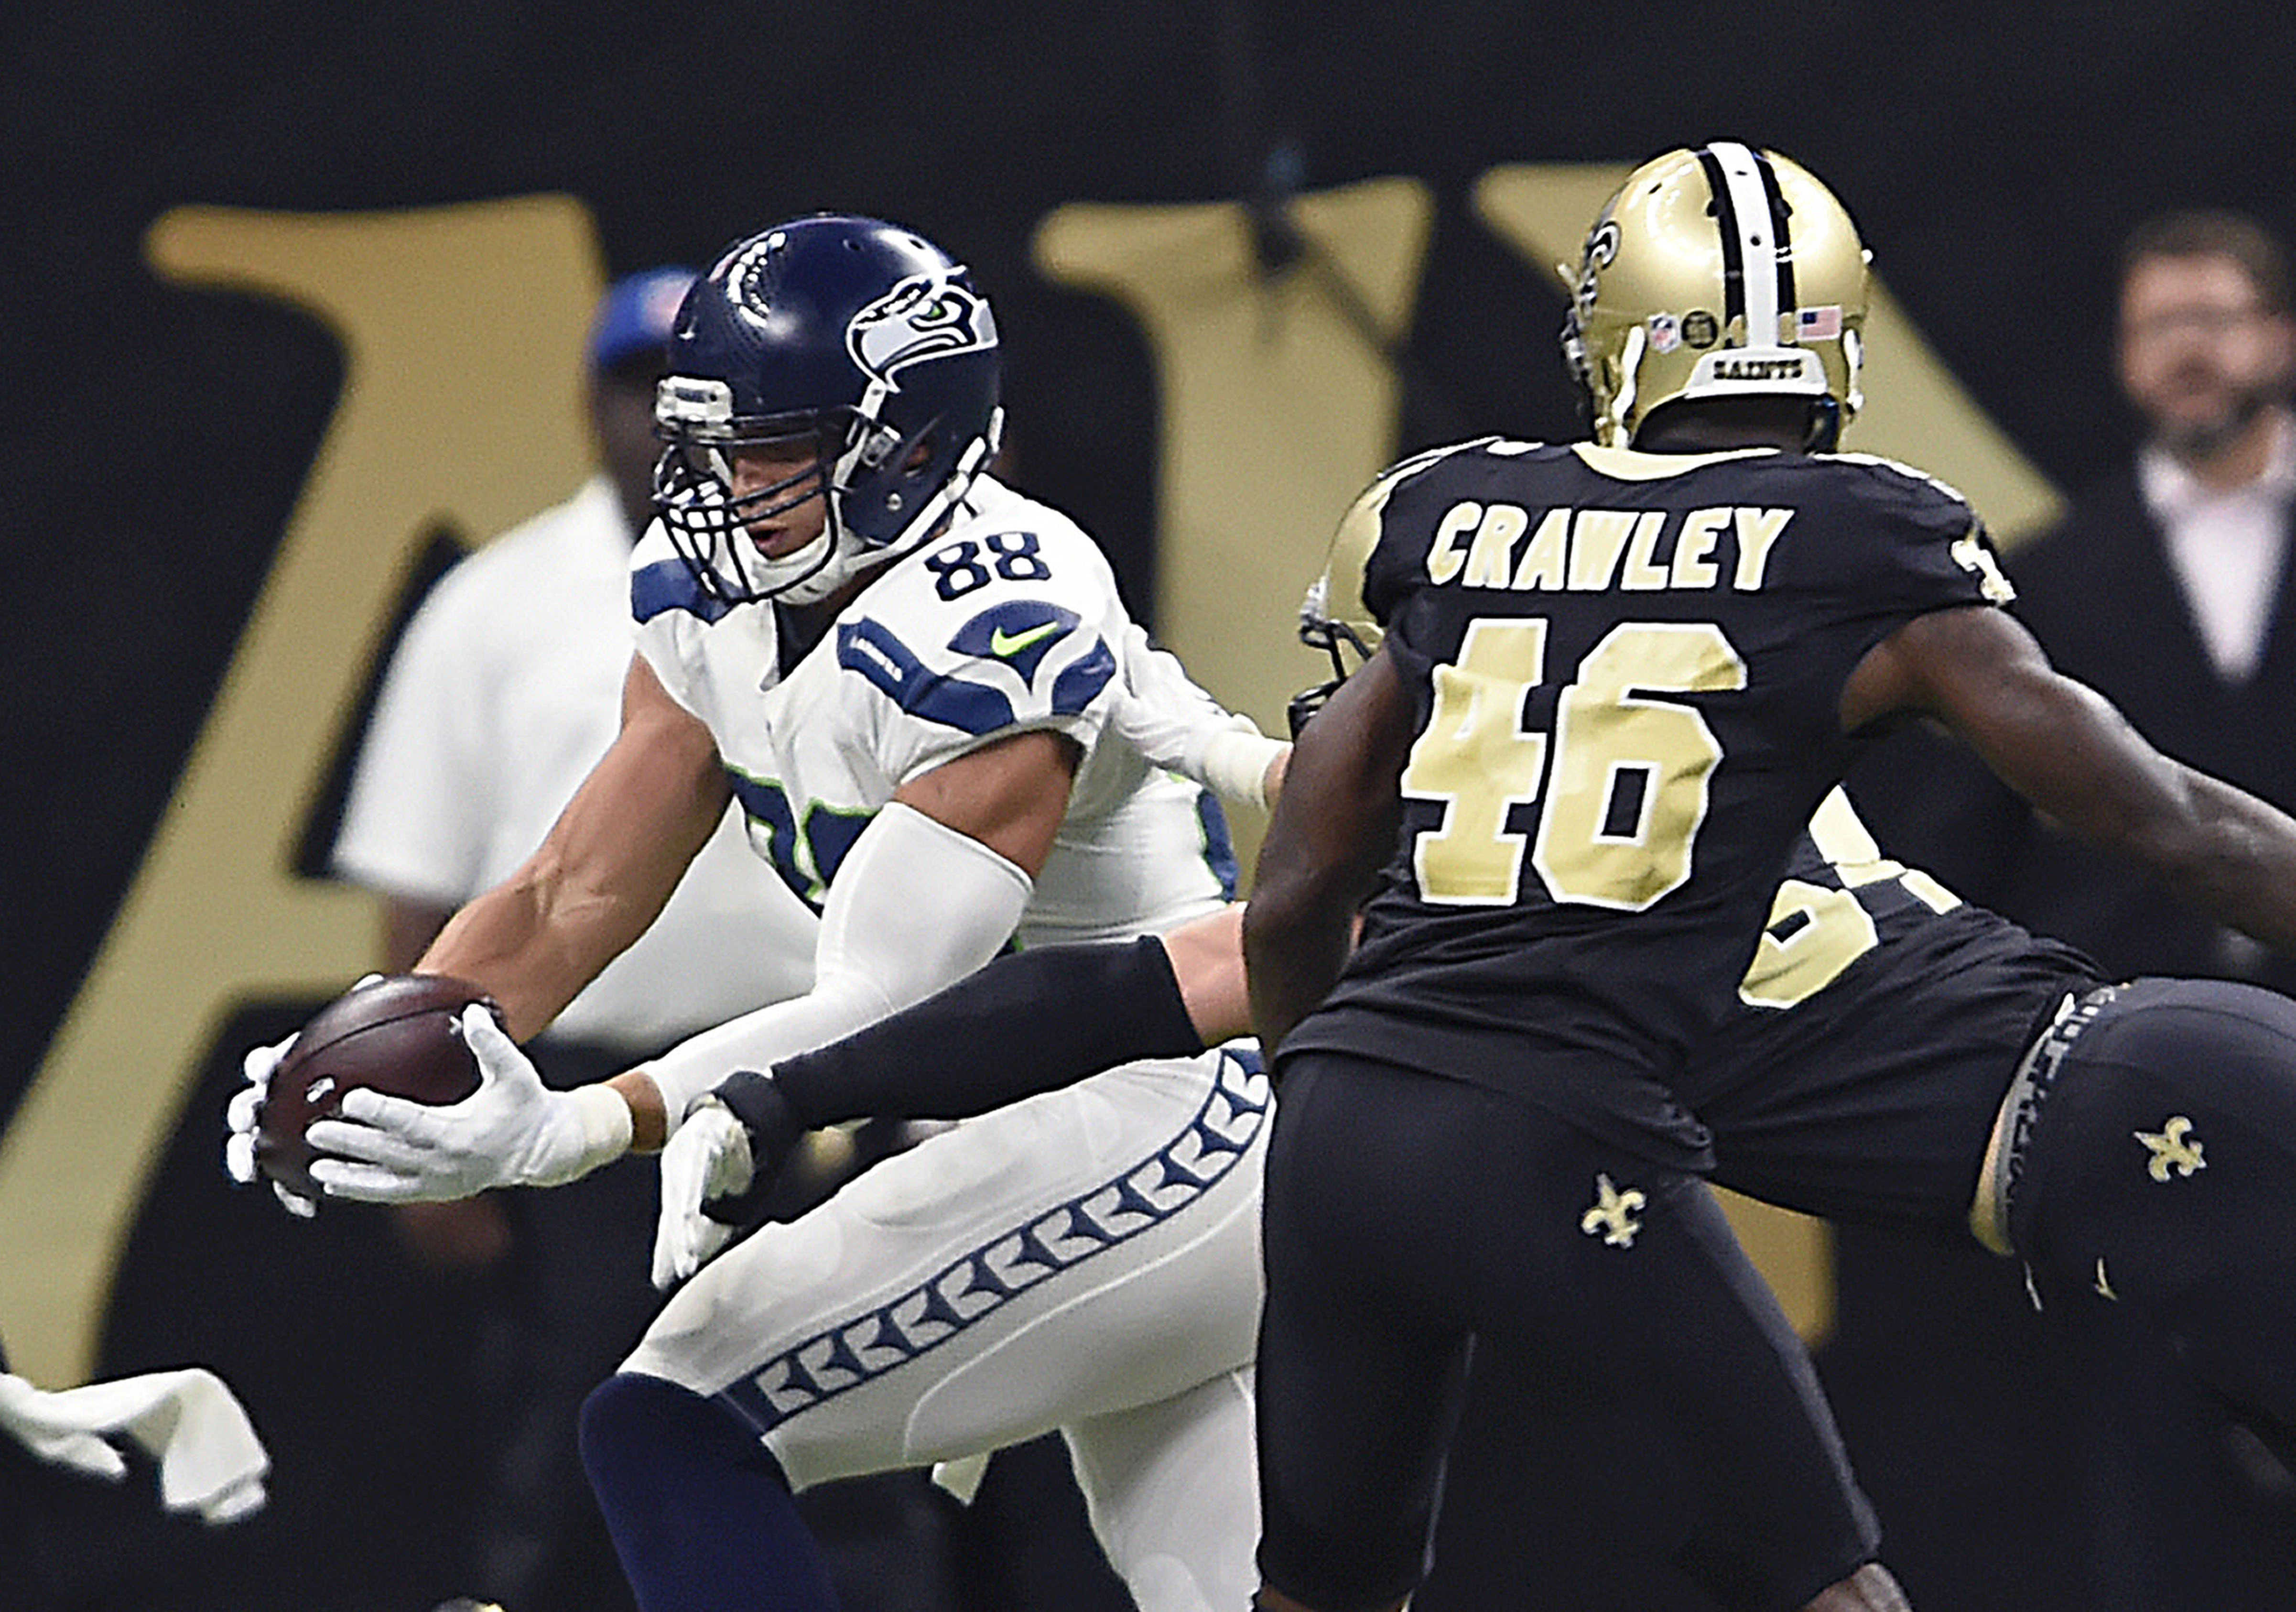 Seattle Seahawks tight end Jimmy Graham (88) pulls in a pass in the second half of an NFL football game against the New Orleans Saints in New Orleans, Sunday, Oct. 30, 2016. The Saints won 25-20. (AP Photo/Bill Feig)